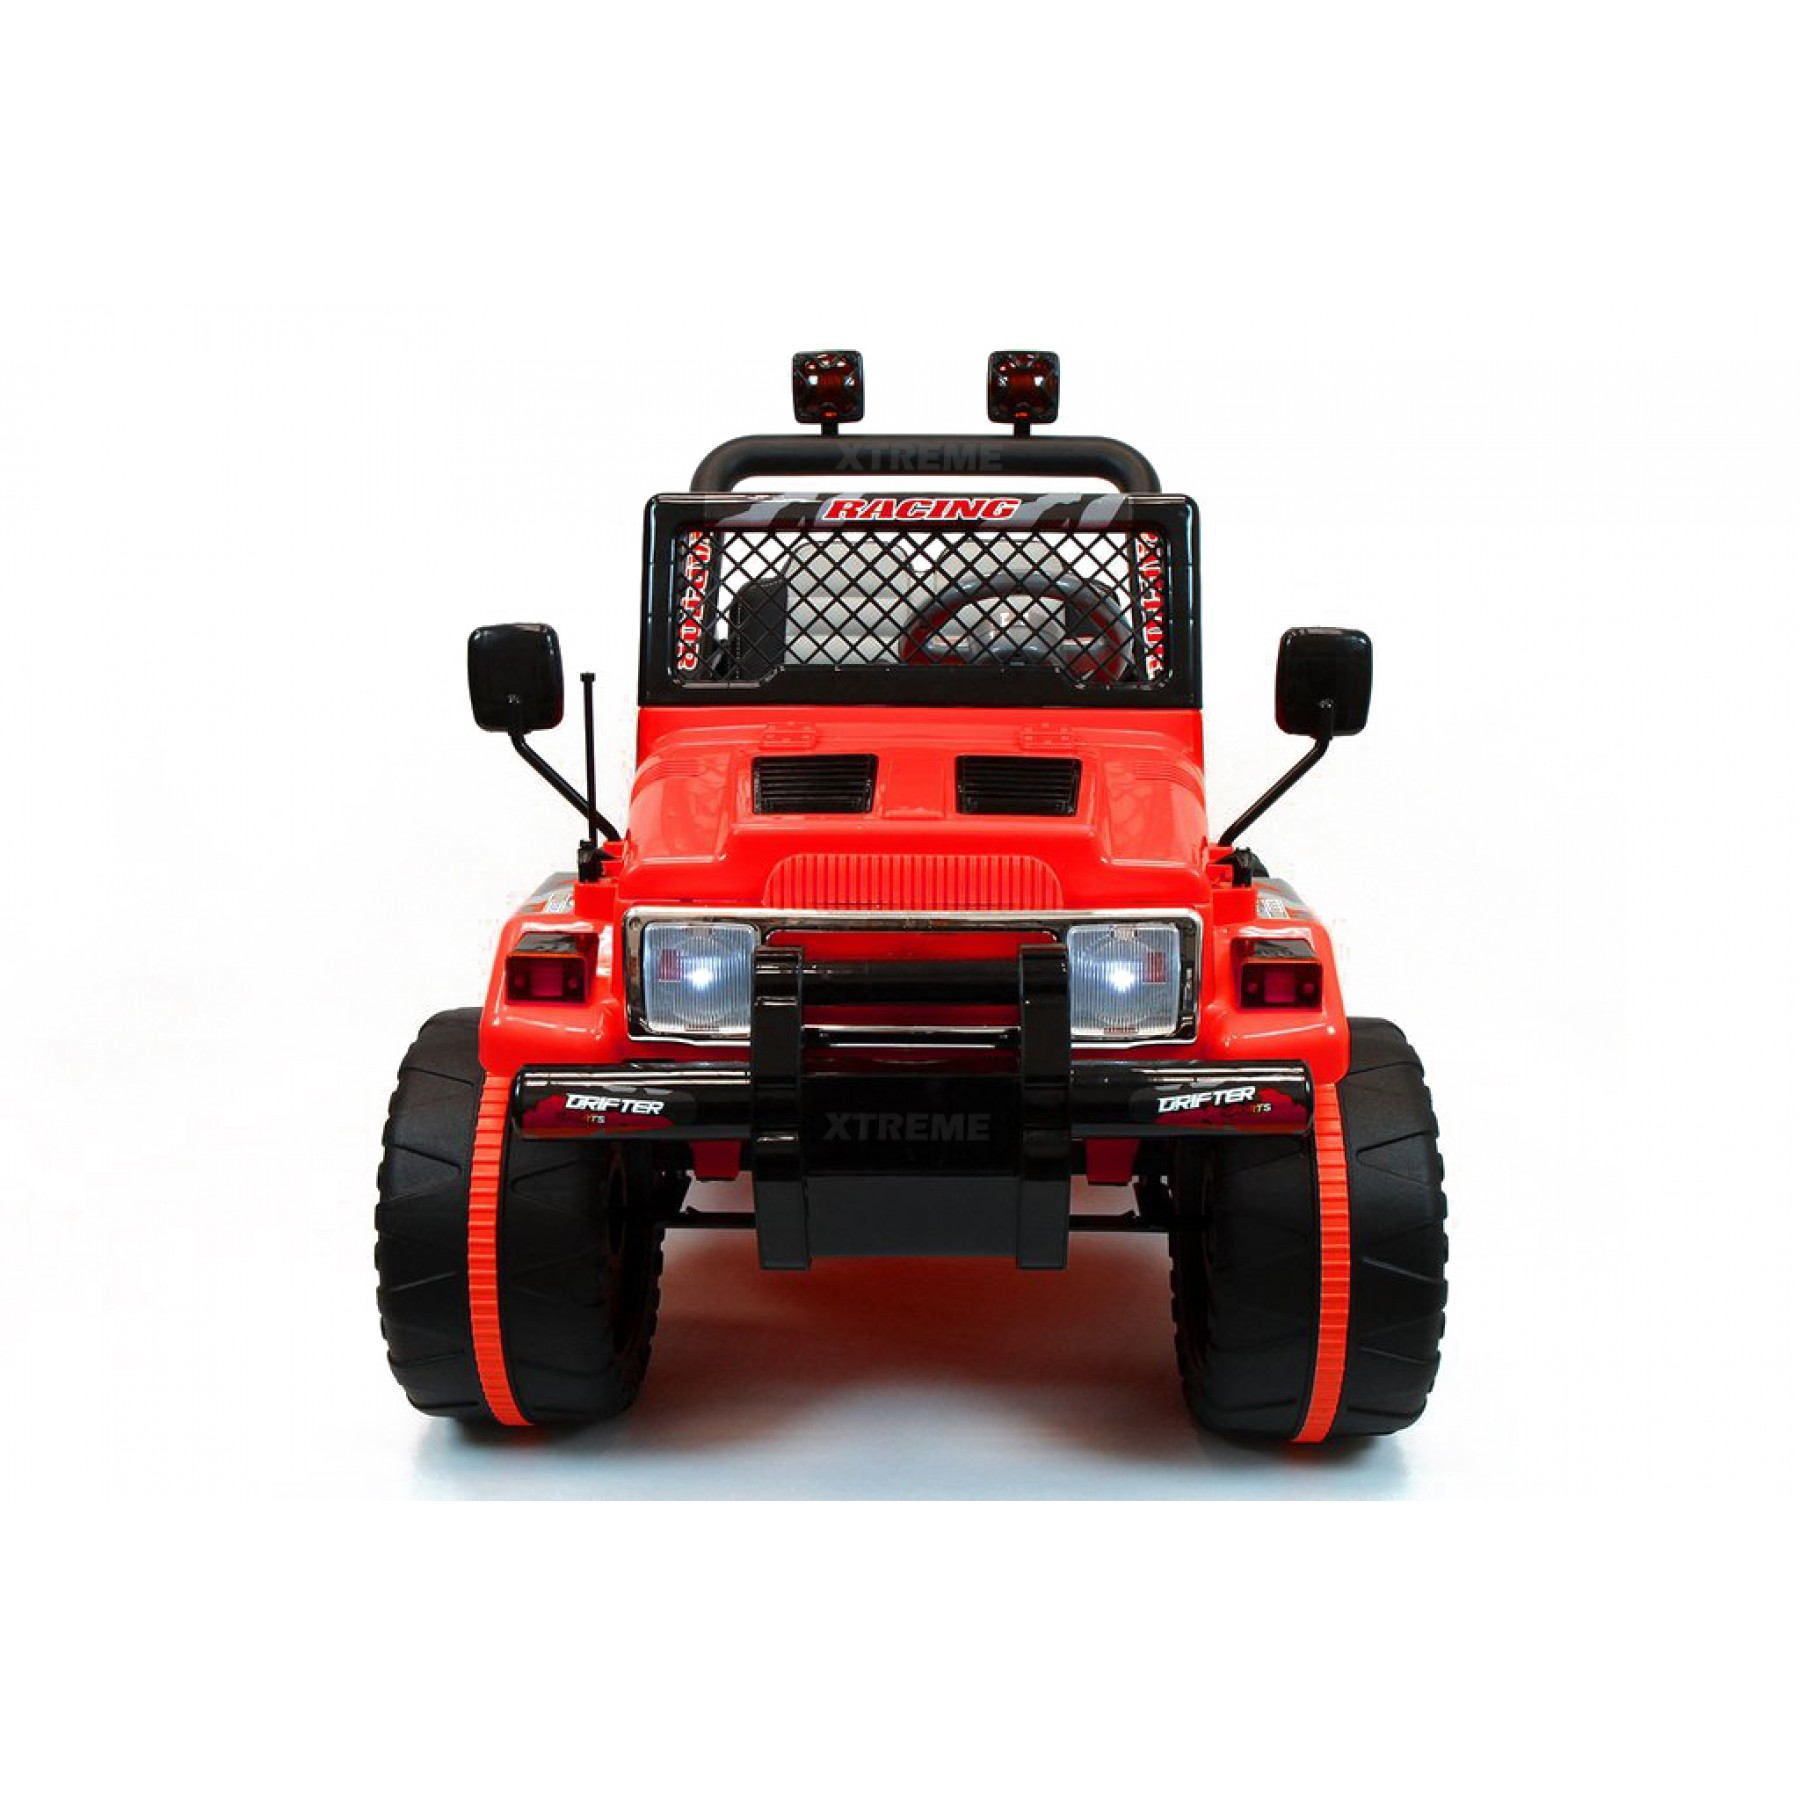 Xtreme 12v Ride on Off-Road Jeep in Red